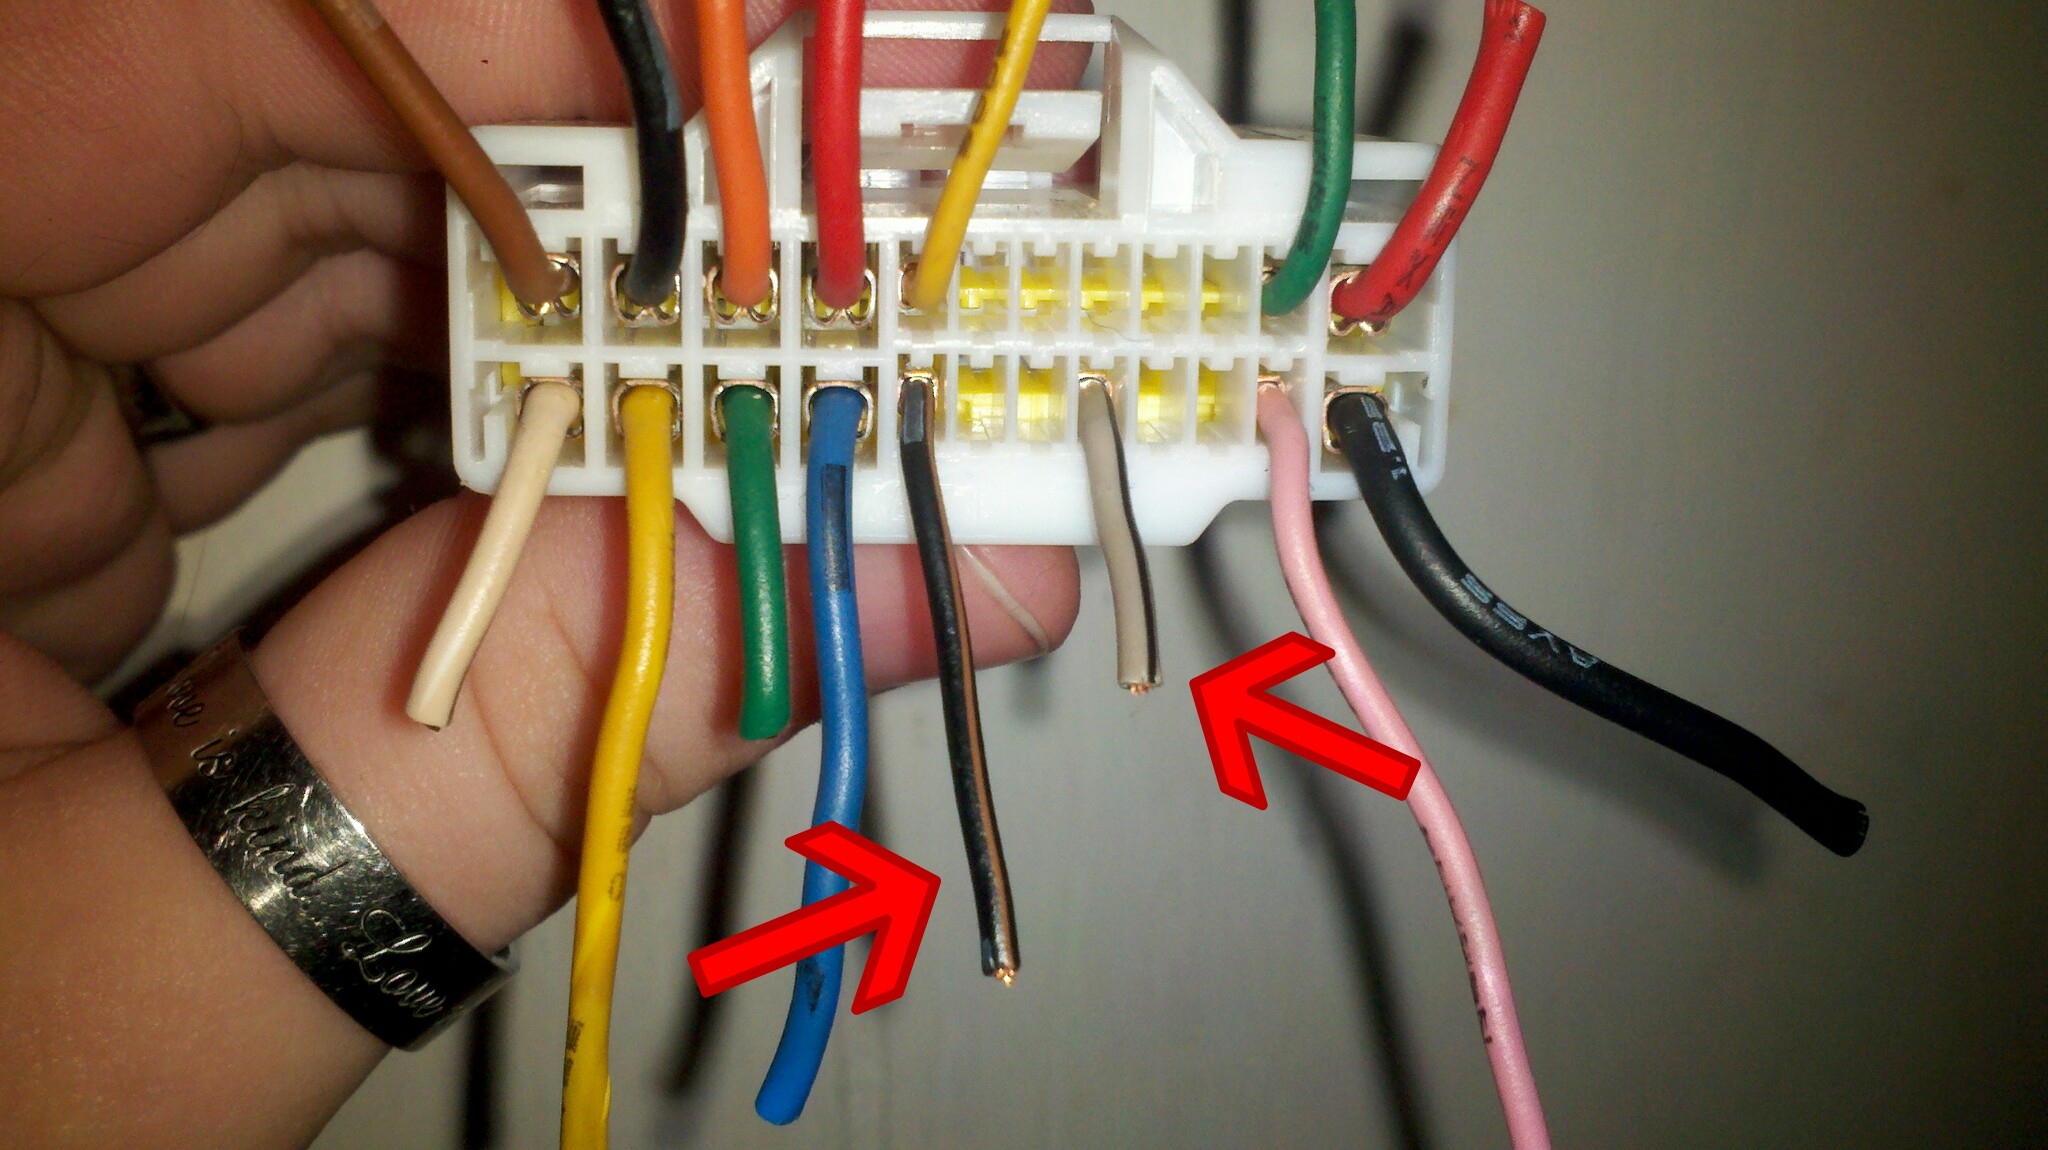 Hyundai Accent Wiring Diagram Besides Hyundai Elantra Wiring Diagram